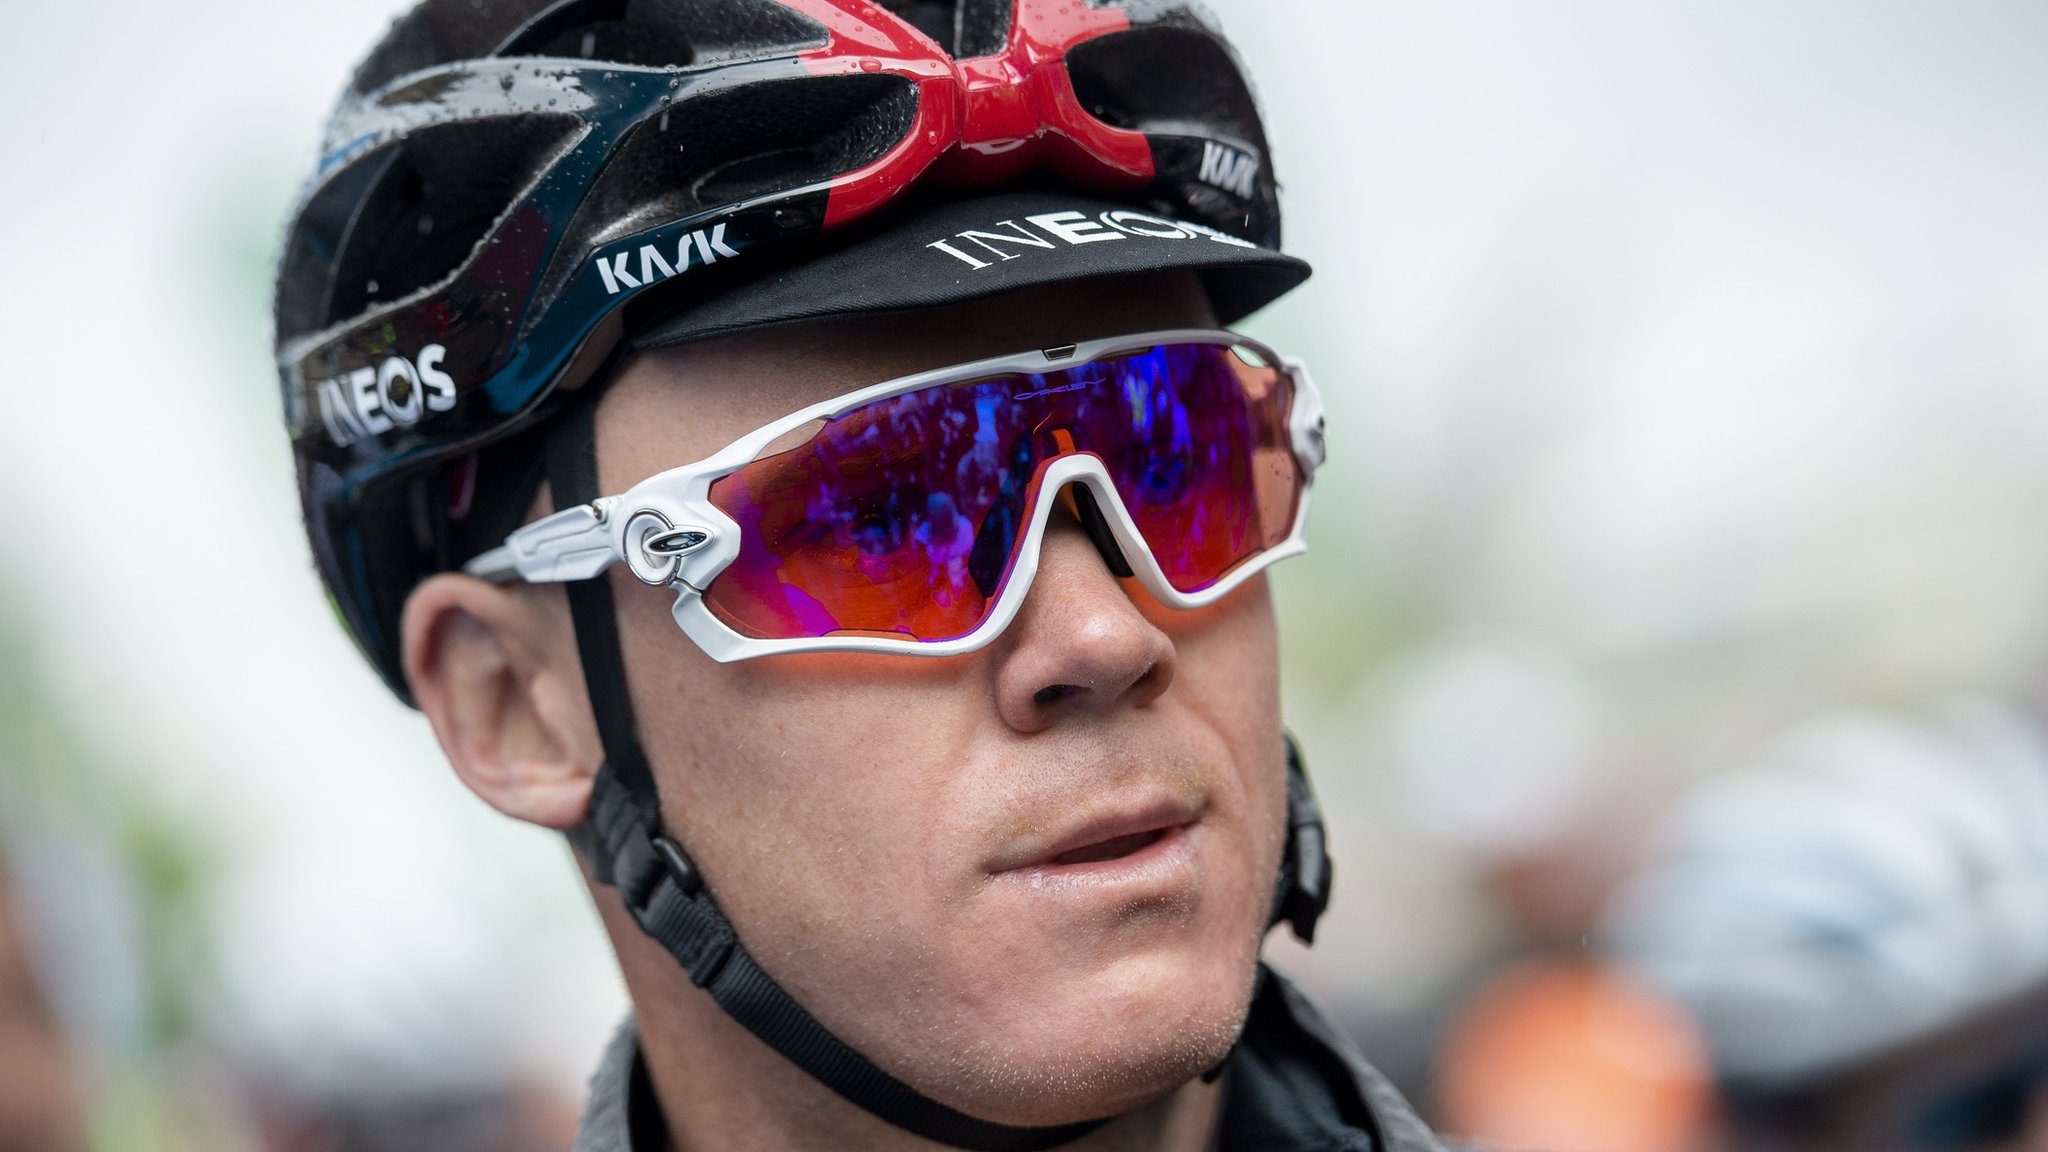 Froome fractured neck in crash & faces six weeks in hospital